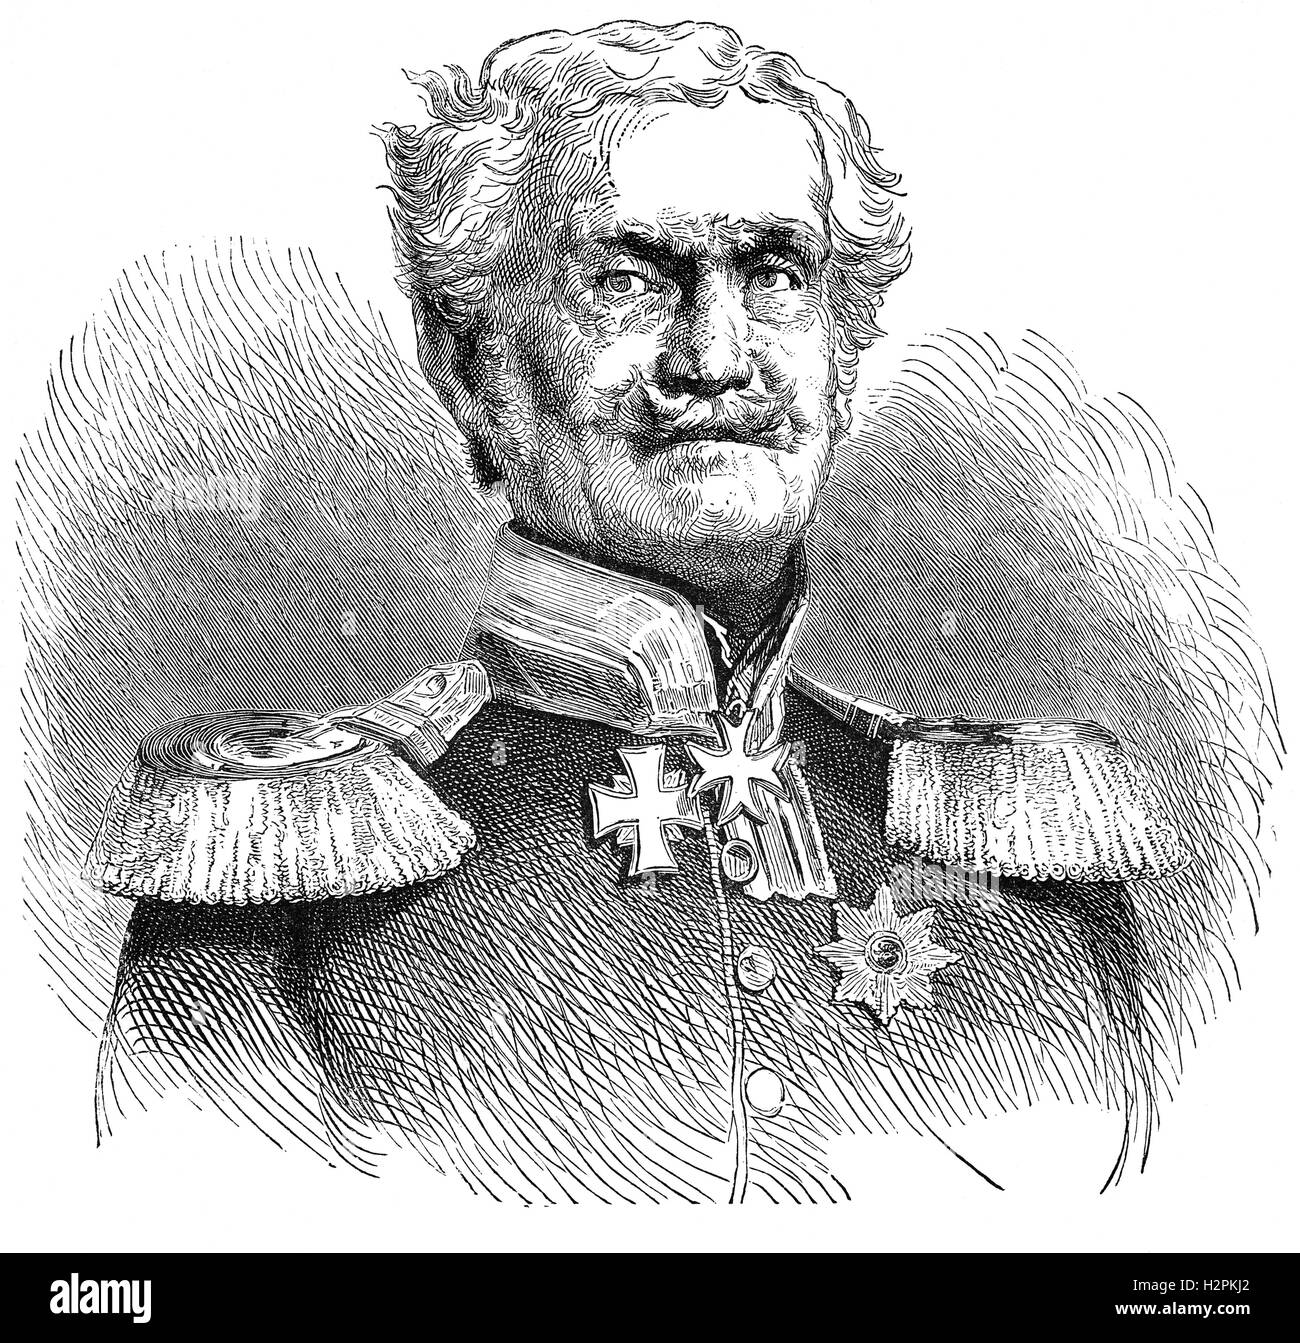 Friedrich Heinrich Ernst Graf von Wrangel (1784 – 1877) was a Generalfeldmarschall of the Prussian Army. He was - Stock Image